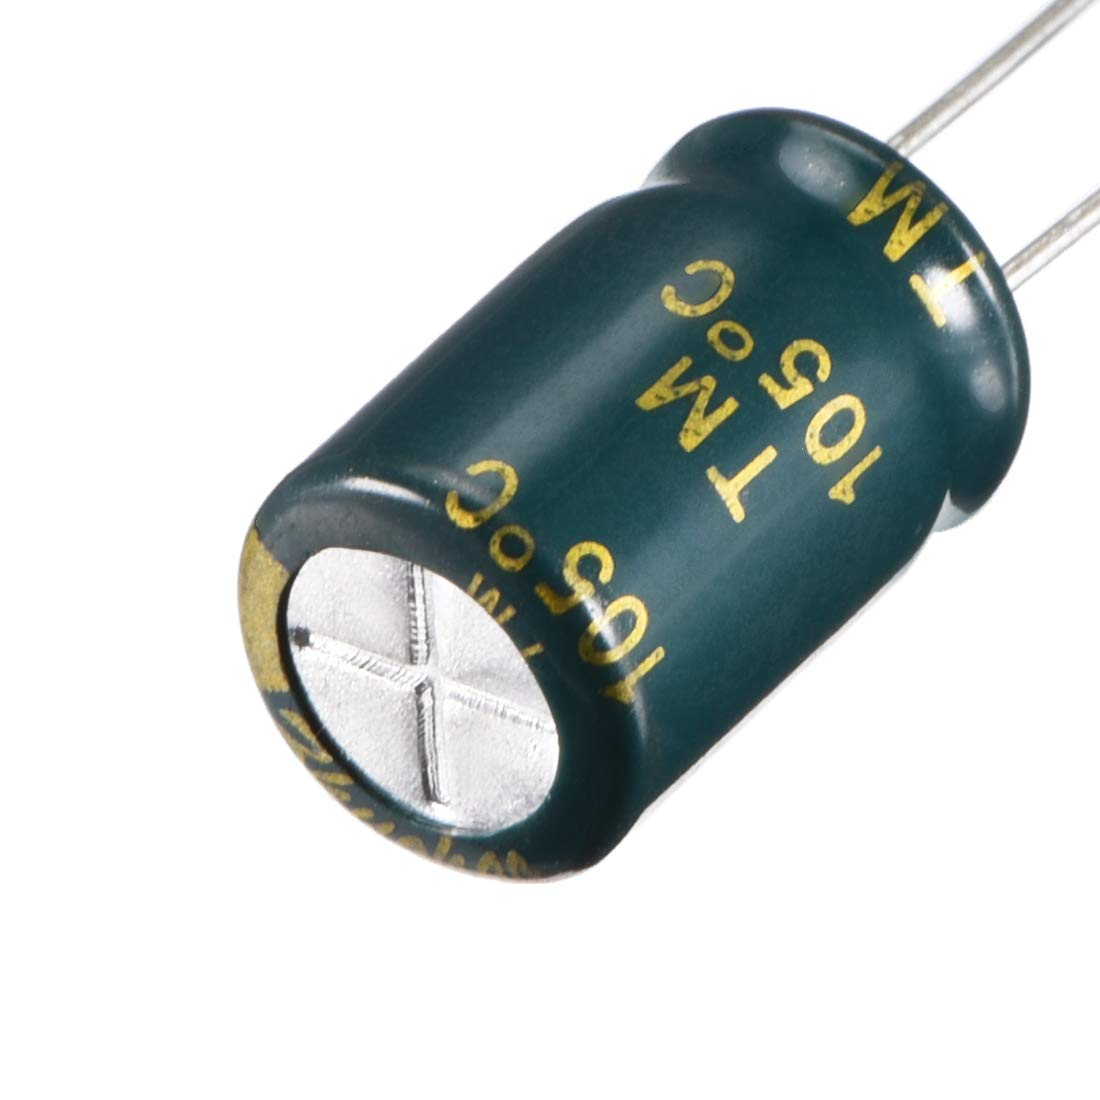 uxcell/® Aluminum Radial Electrolytic Capacitor Low ESR Green with 10uF 400V 105 Celsius Life 3000H 8 x 12mm High Ripple Current,Low Impedance 50pcs